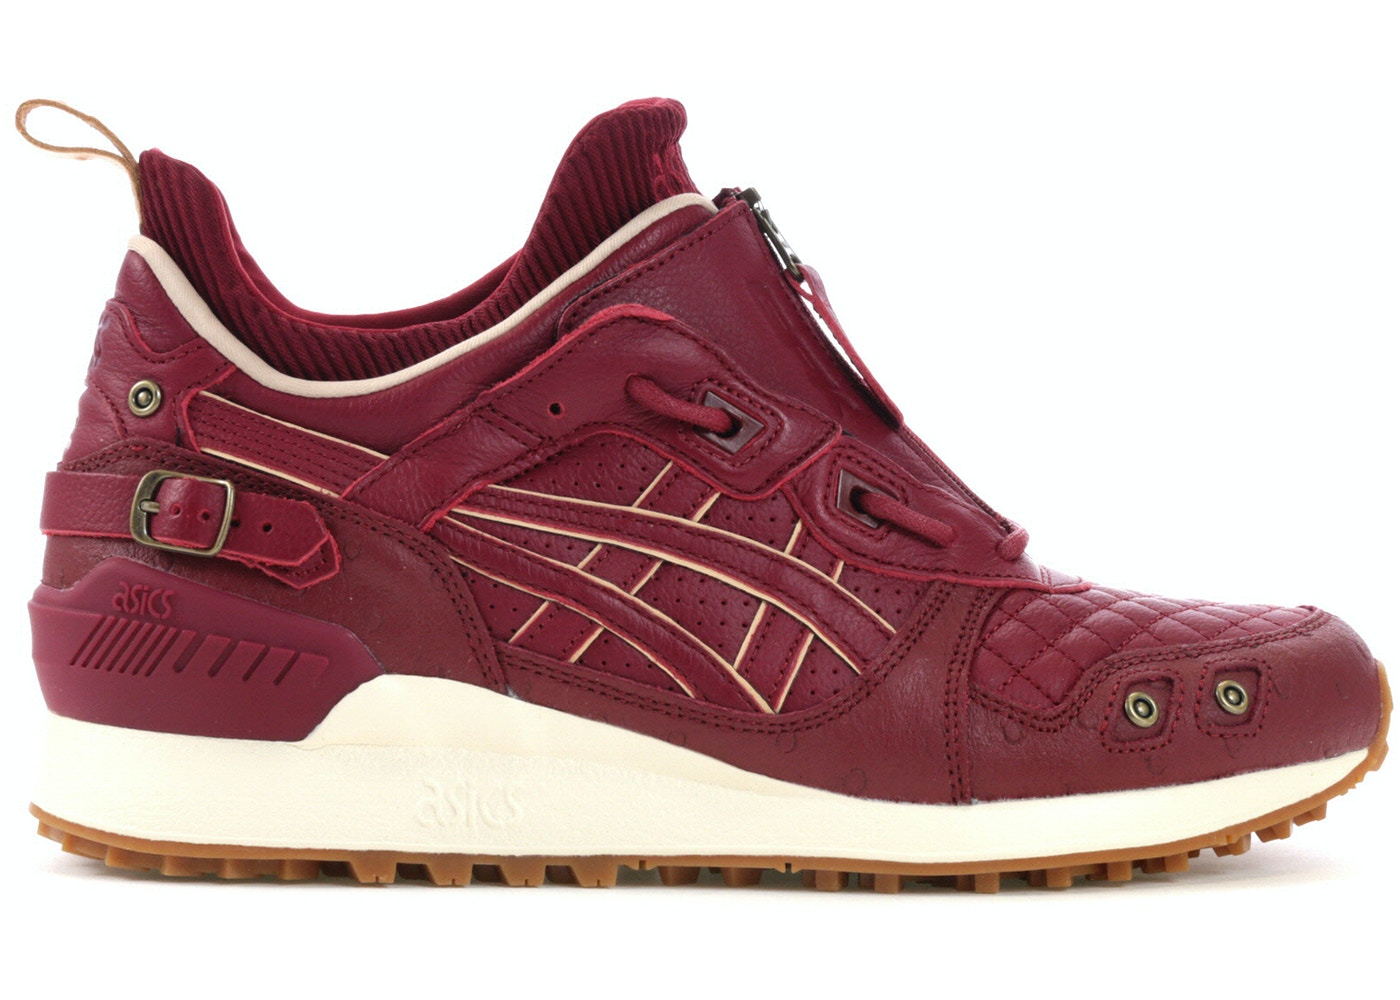 timeless design f01b1 e13c1 Asics Gel-Lyte MT Extra Butter x Ghostface Killah Pretty Toney